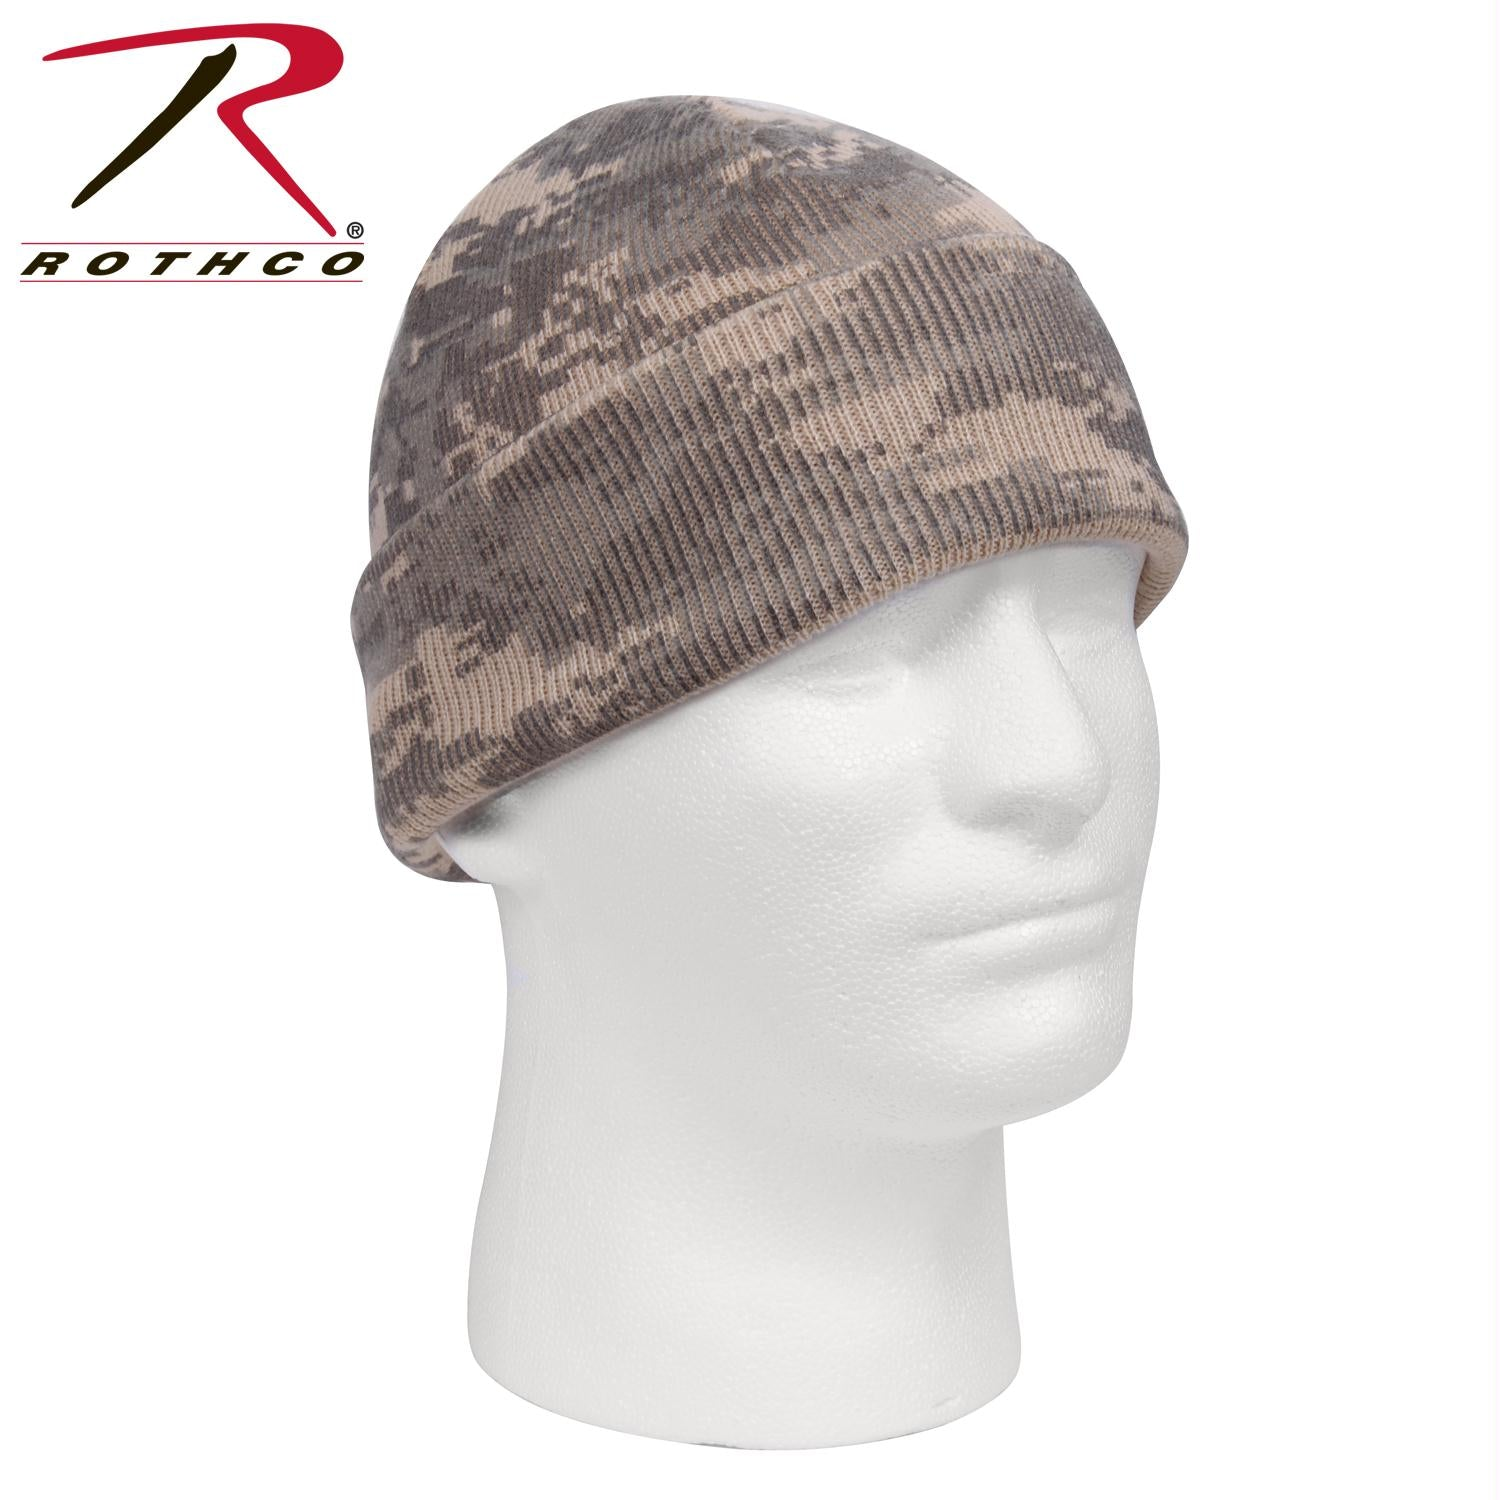 Rothco Deluxe Camo Watch Cap - ACU Digital Camo